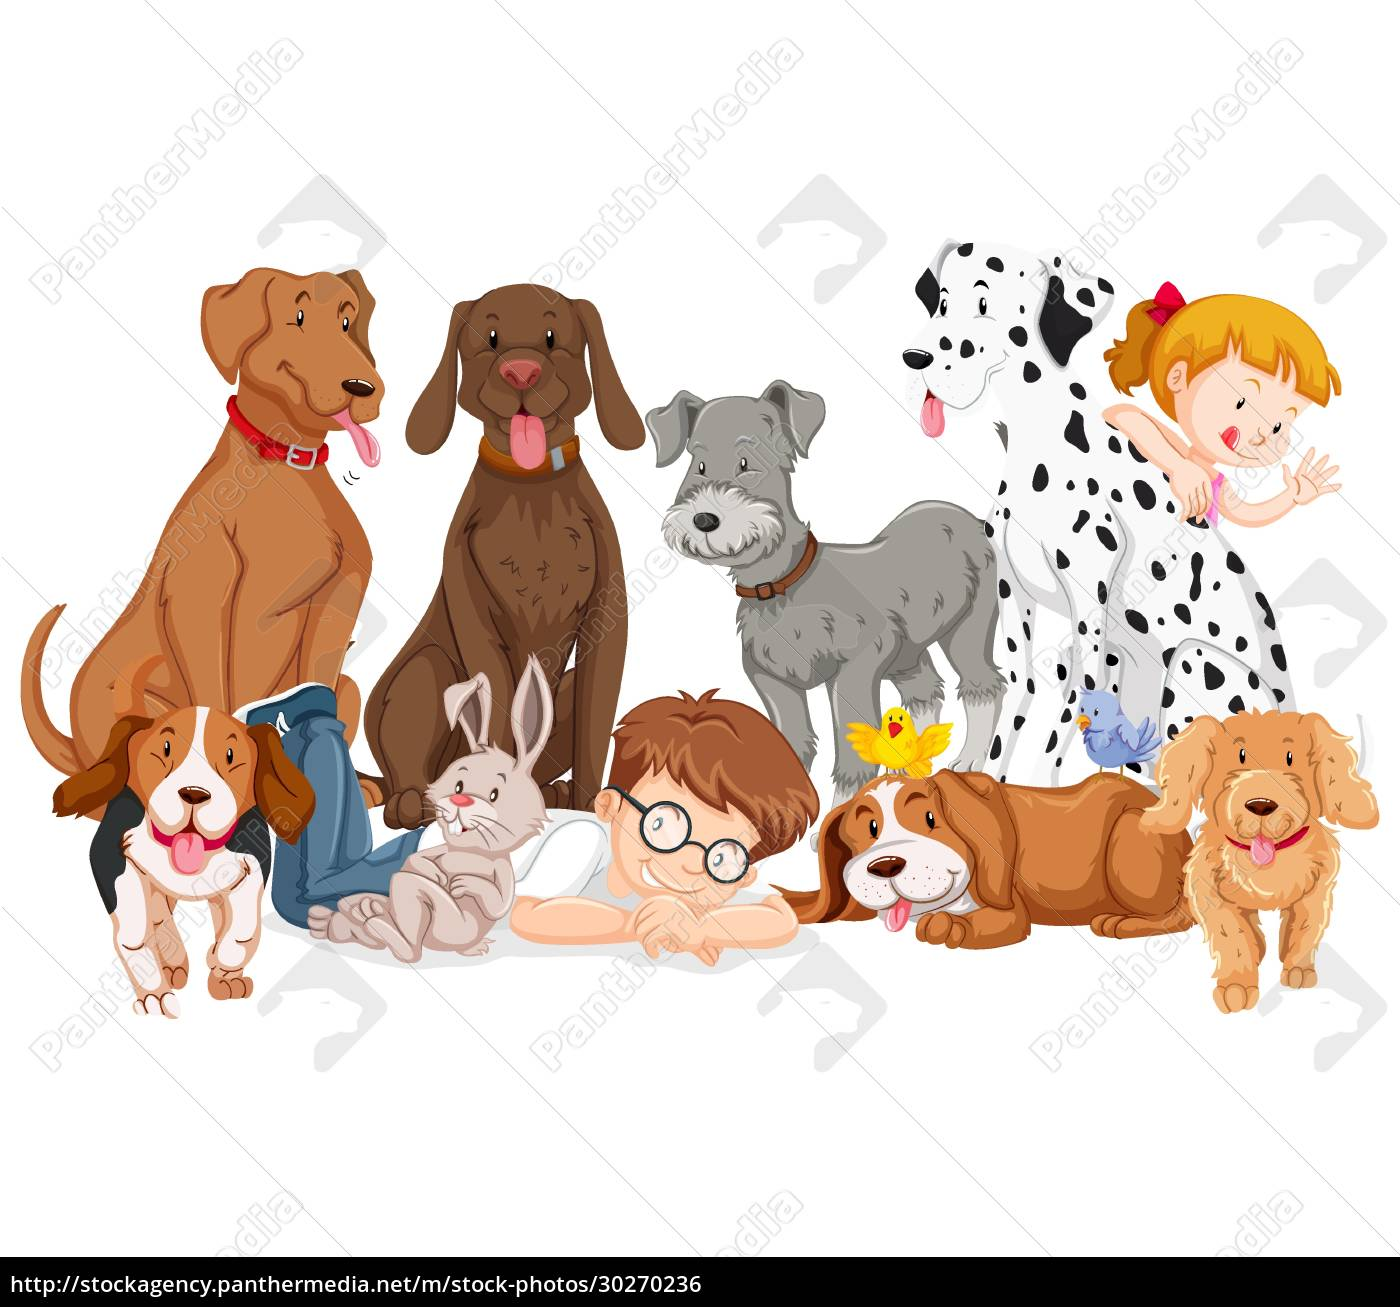 children, with, animals, on, isolated, background - 30270236